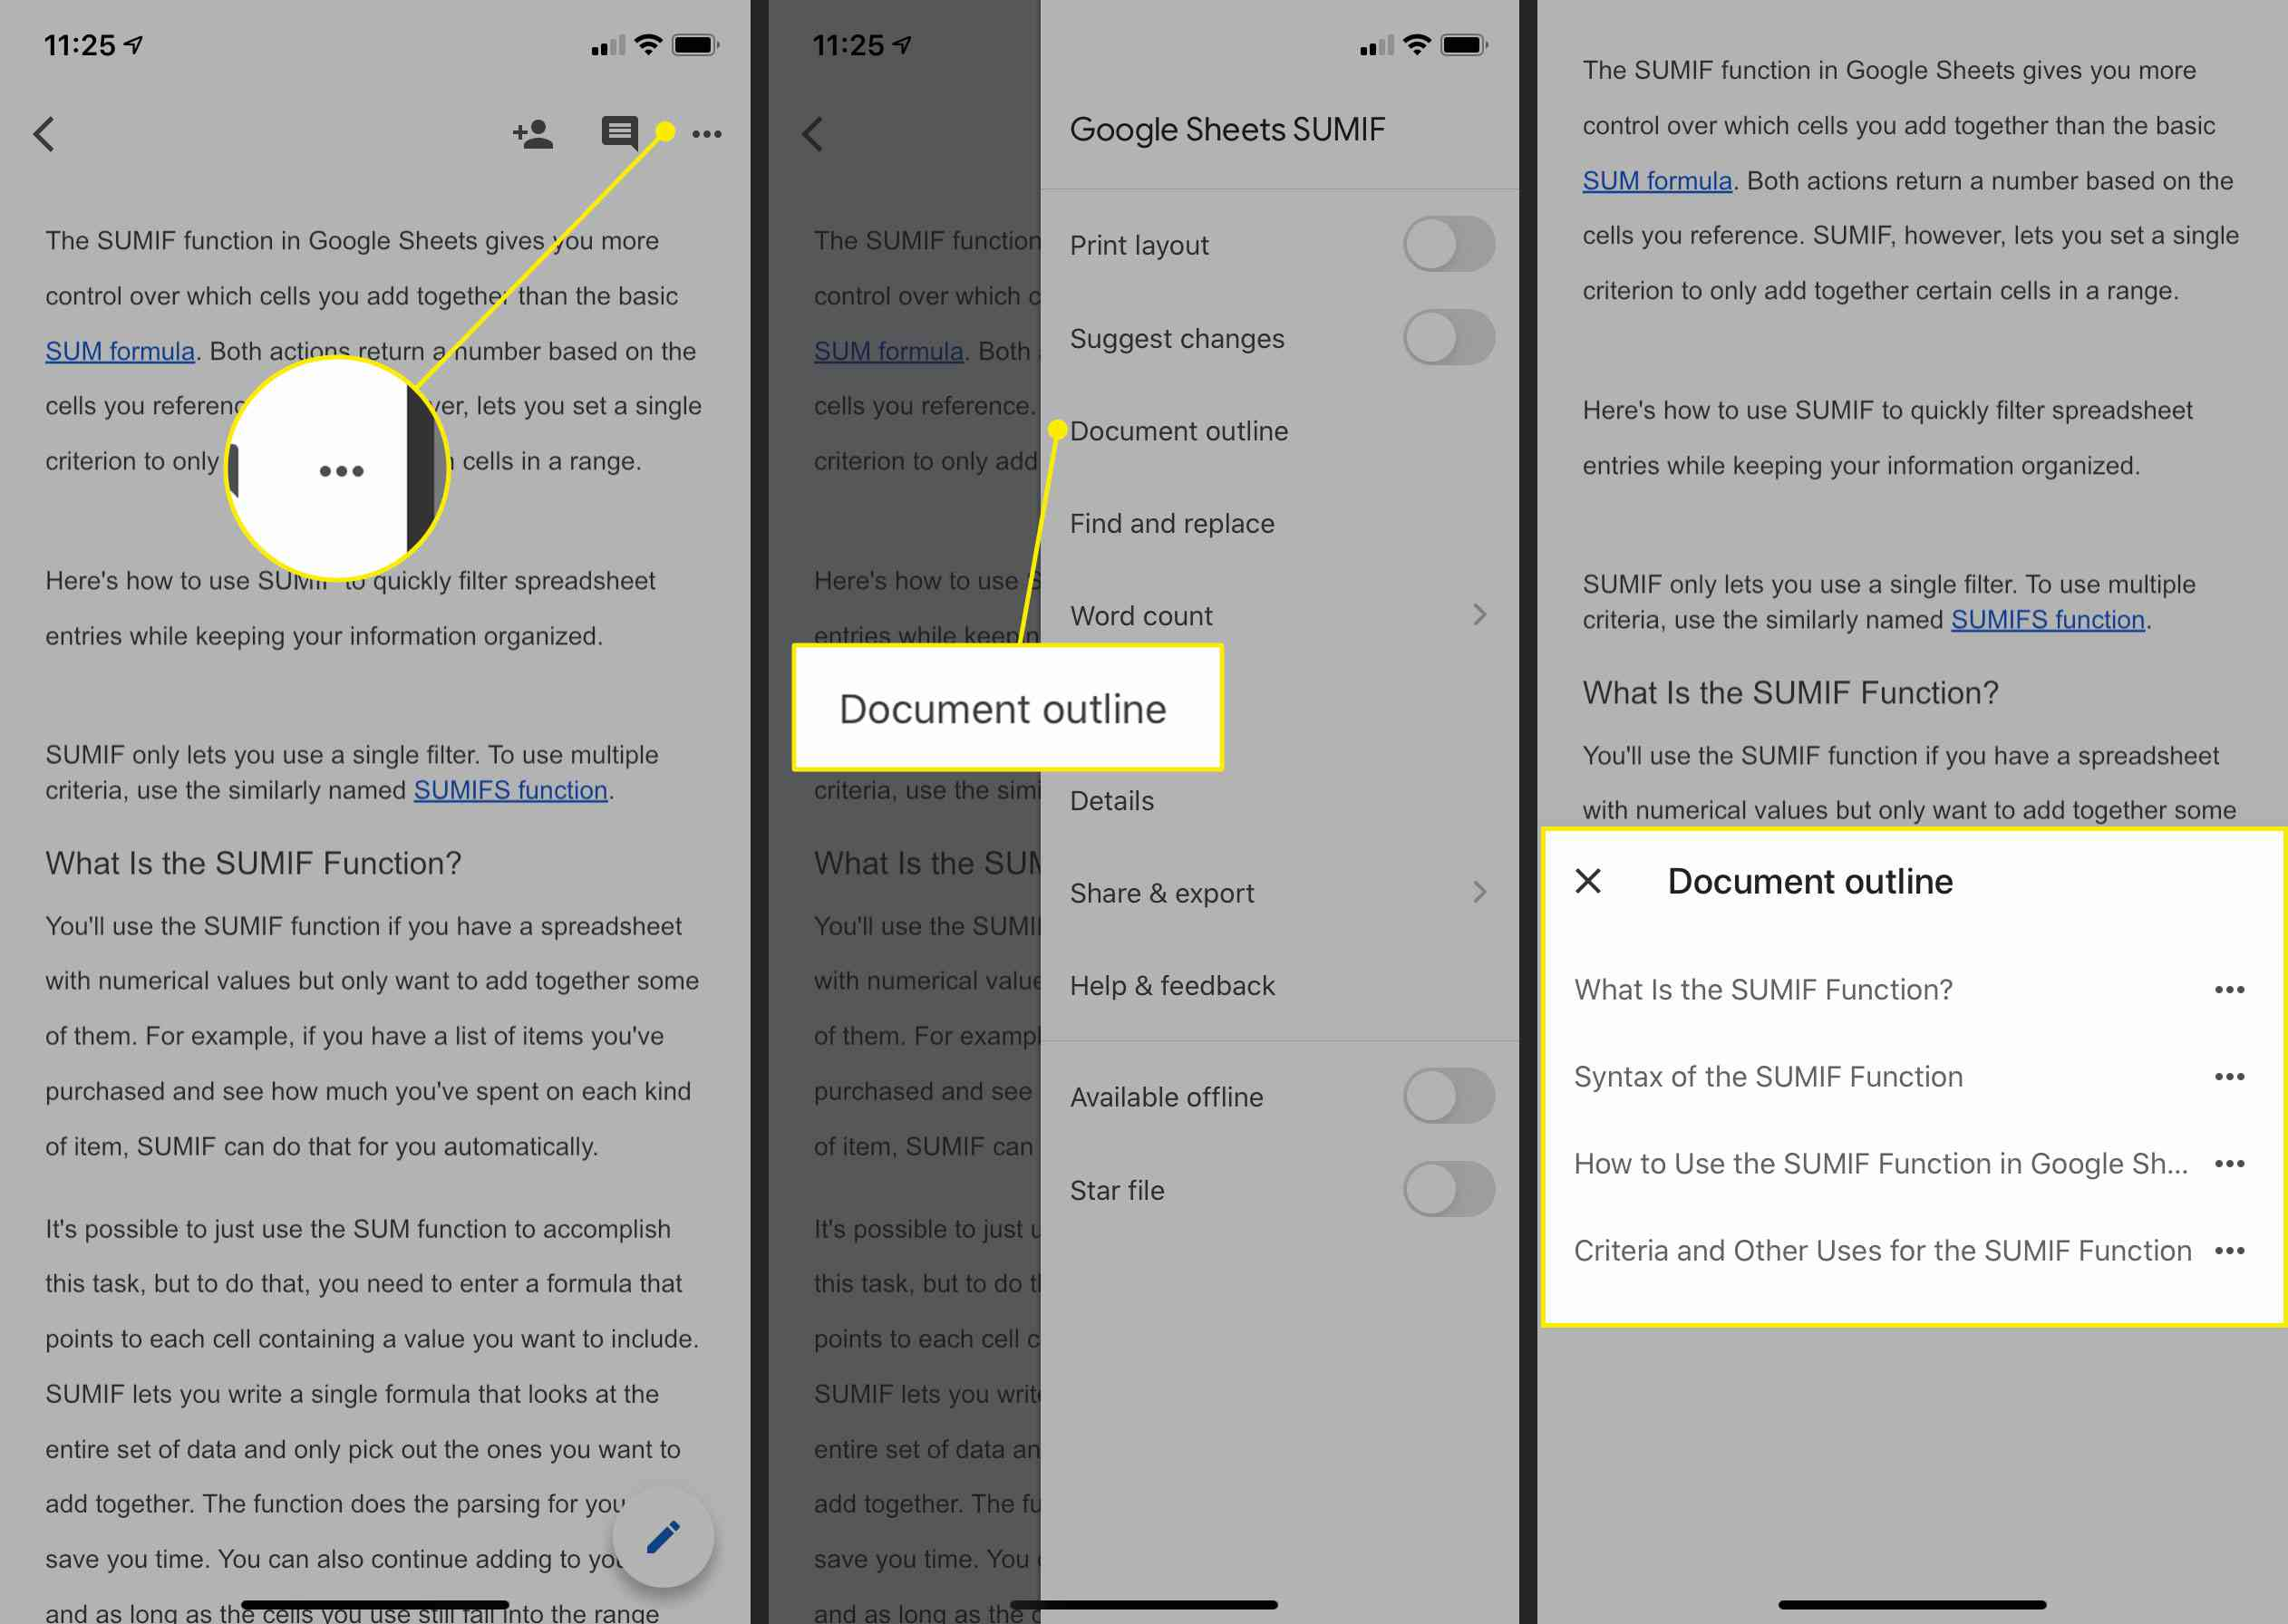 How to enable the document outline on an iOS device